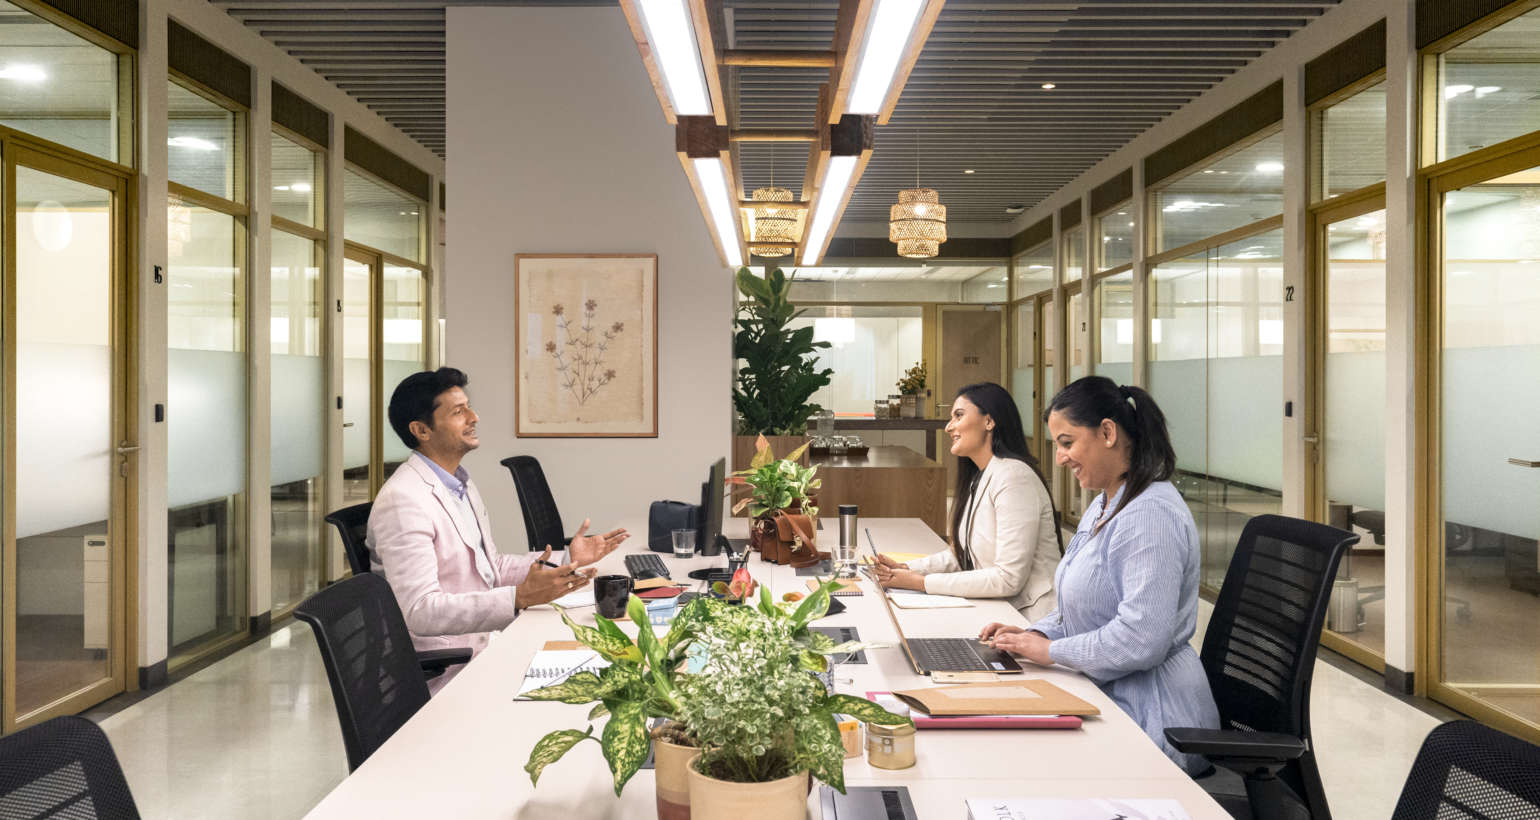 How can shared workspaces help start-ups grow?